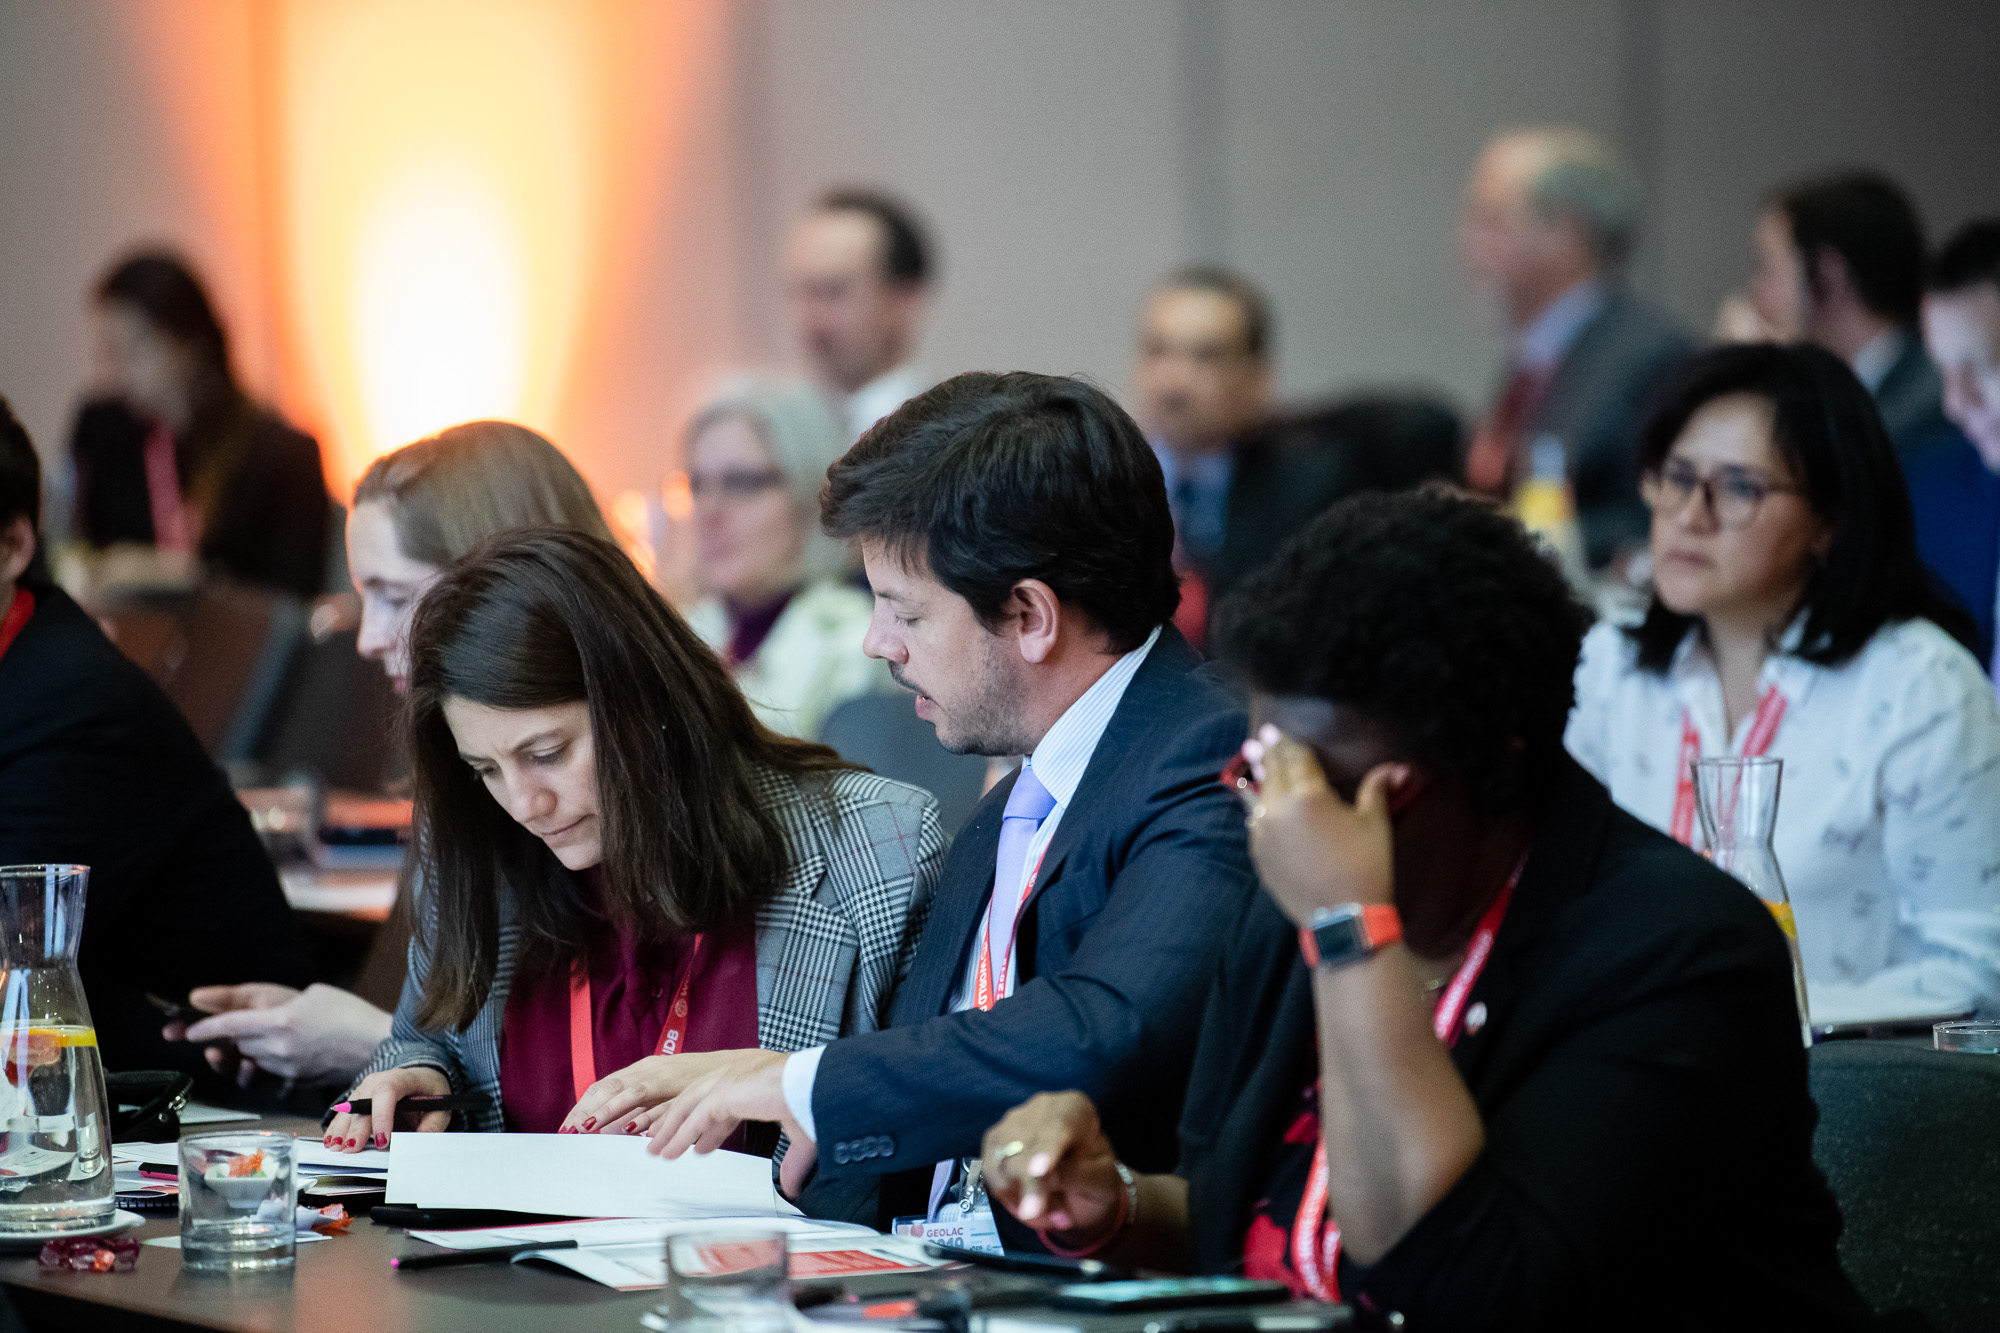 Attendees-in-event-room-201-GEOLAC_SANTIAGO